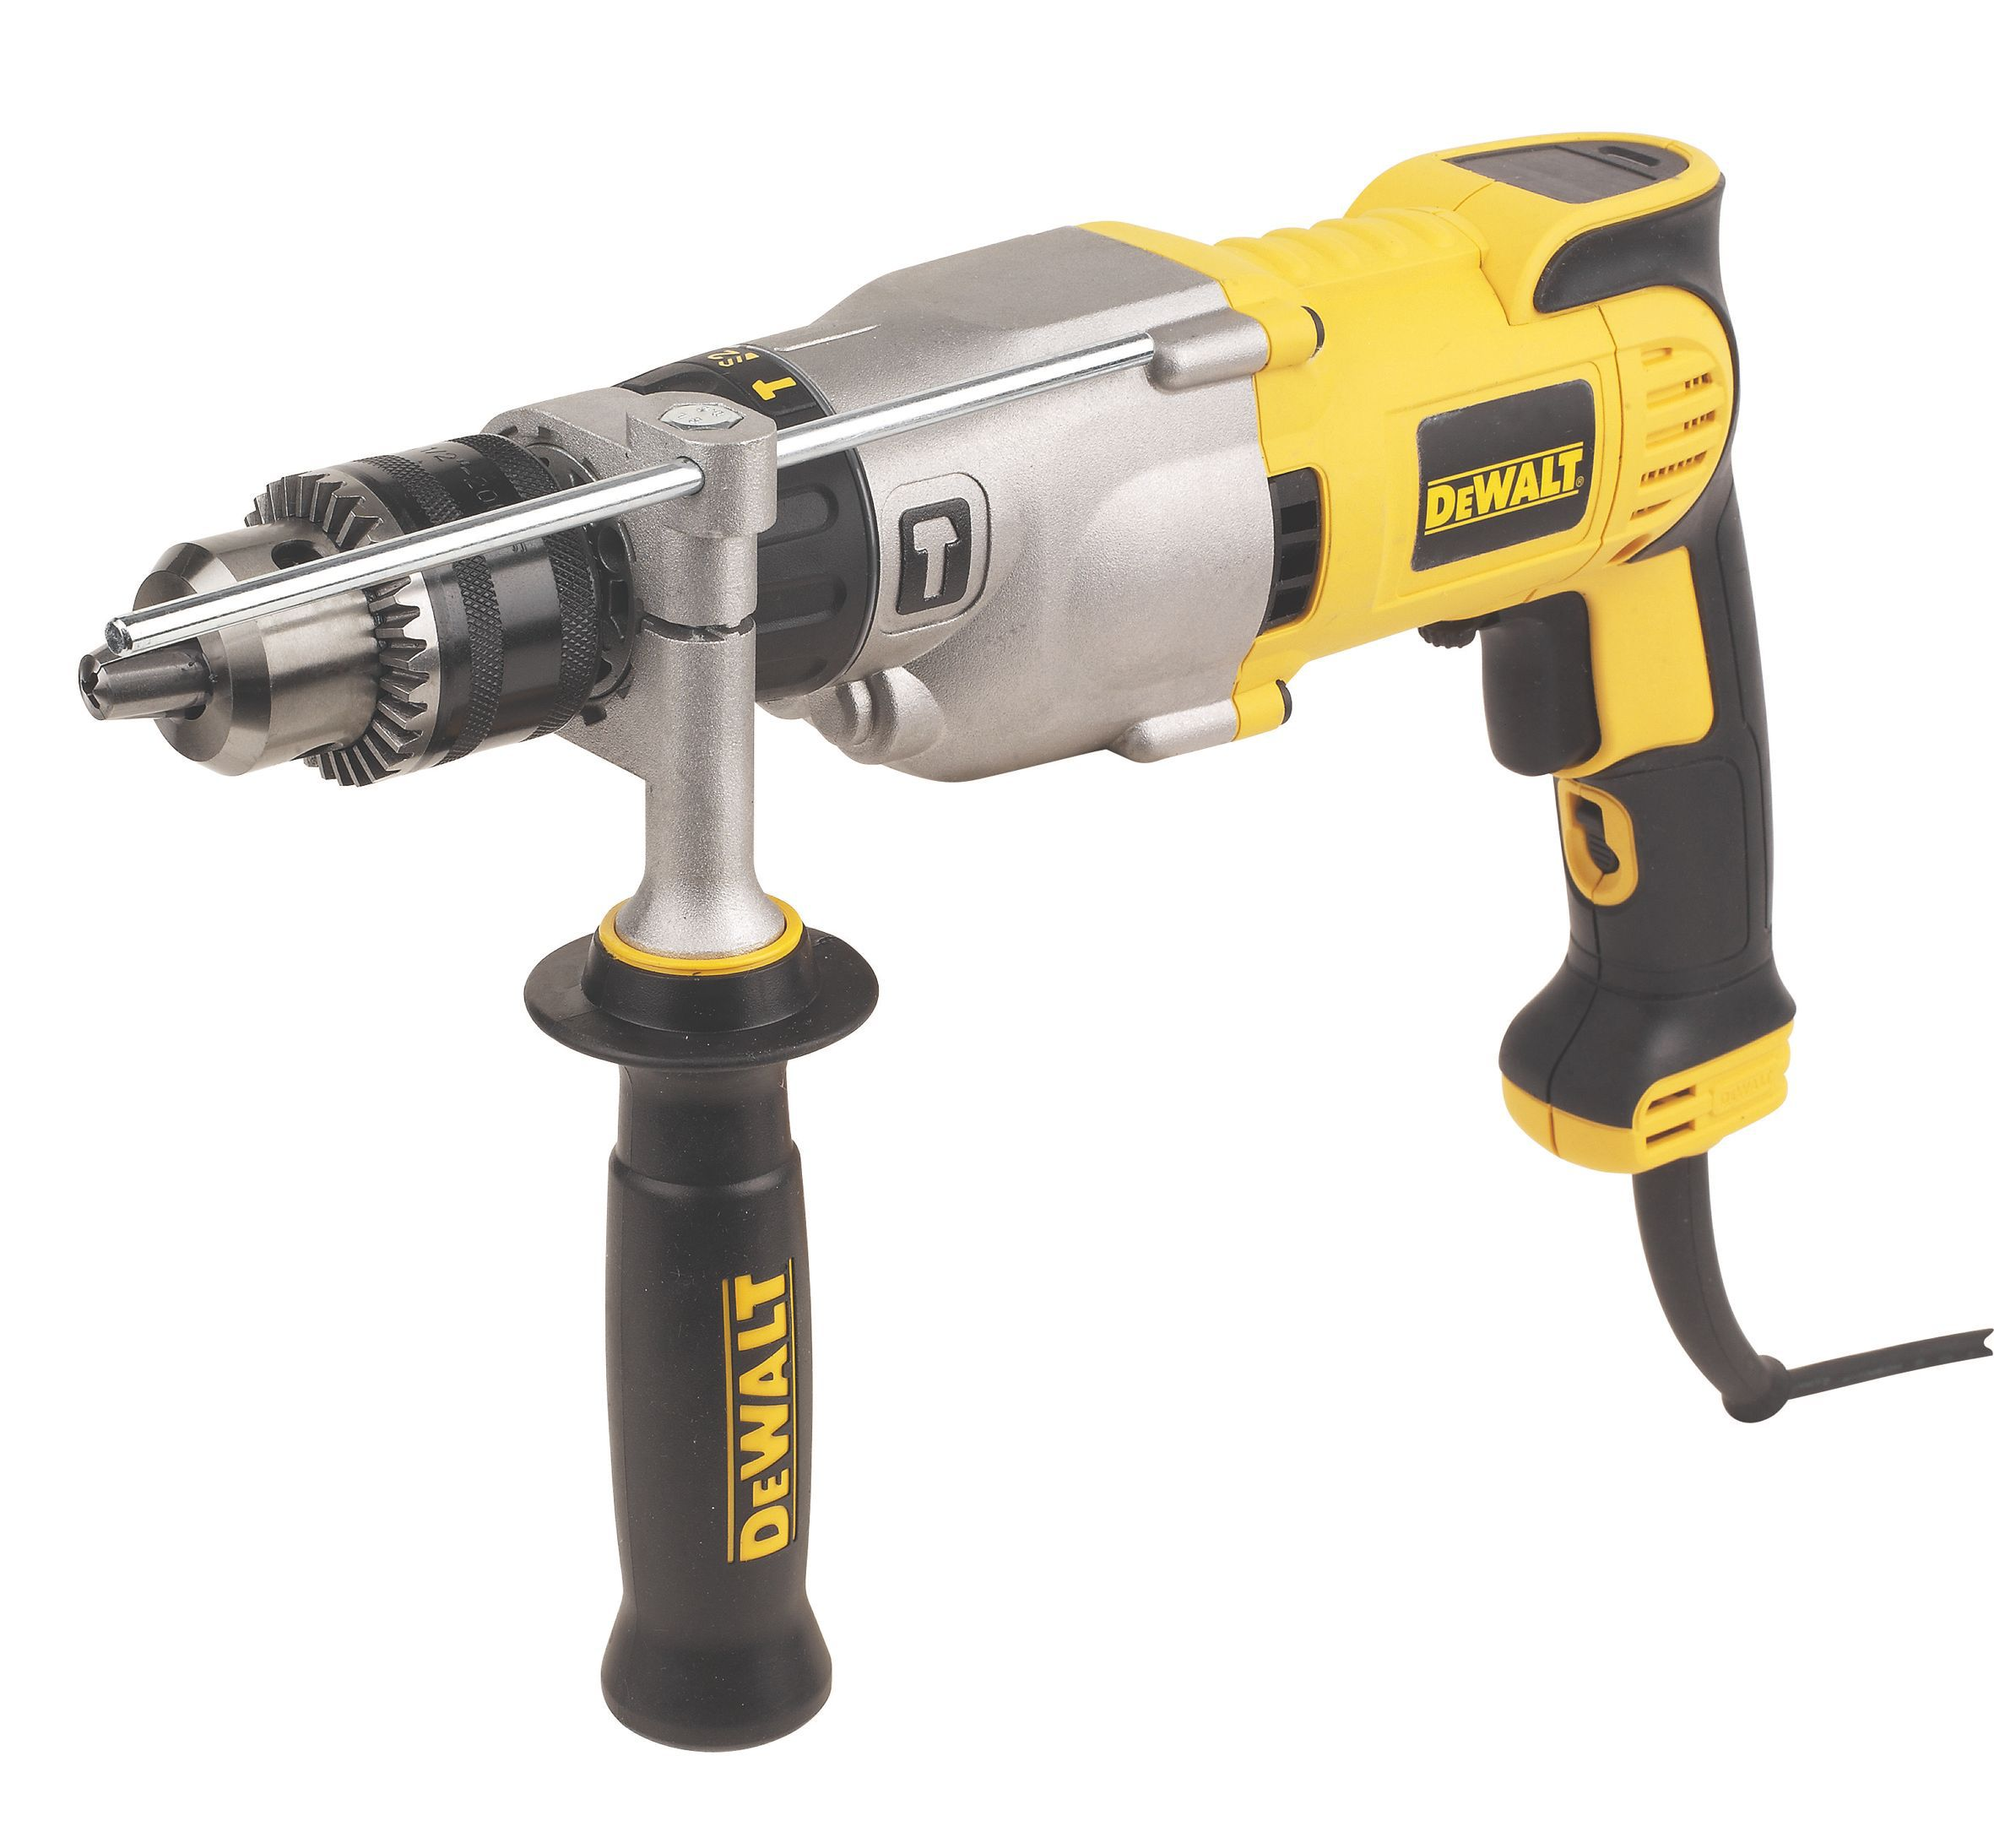 Dewalt 1300w 110v Corded Keyed Chuck Brushed Diamond Core